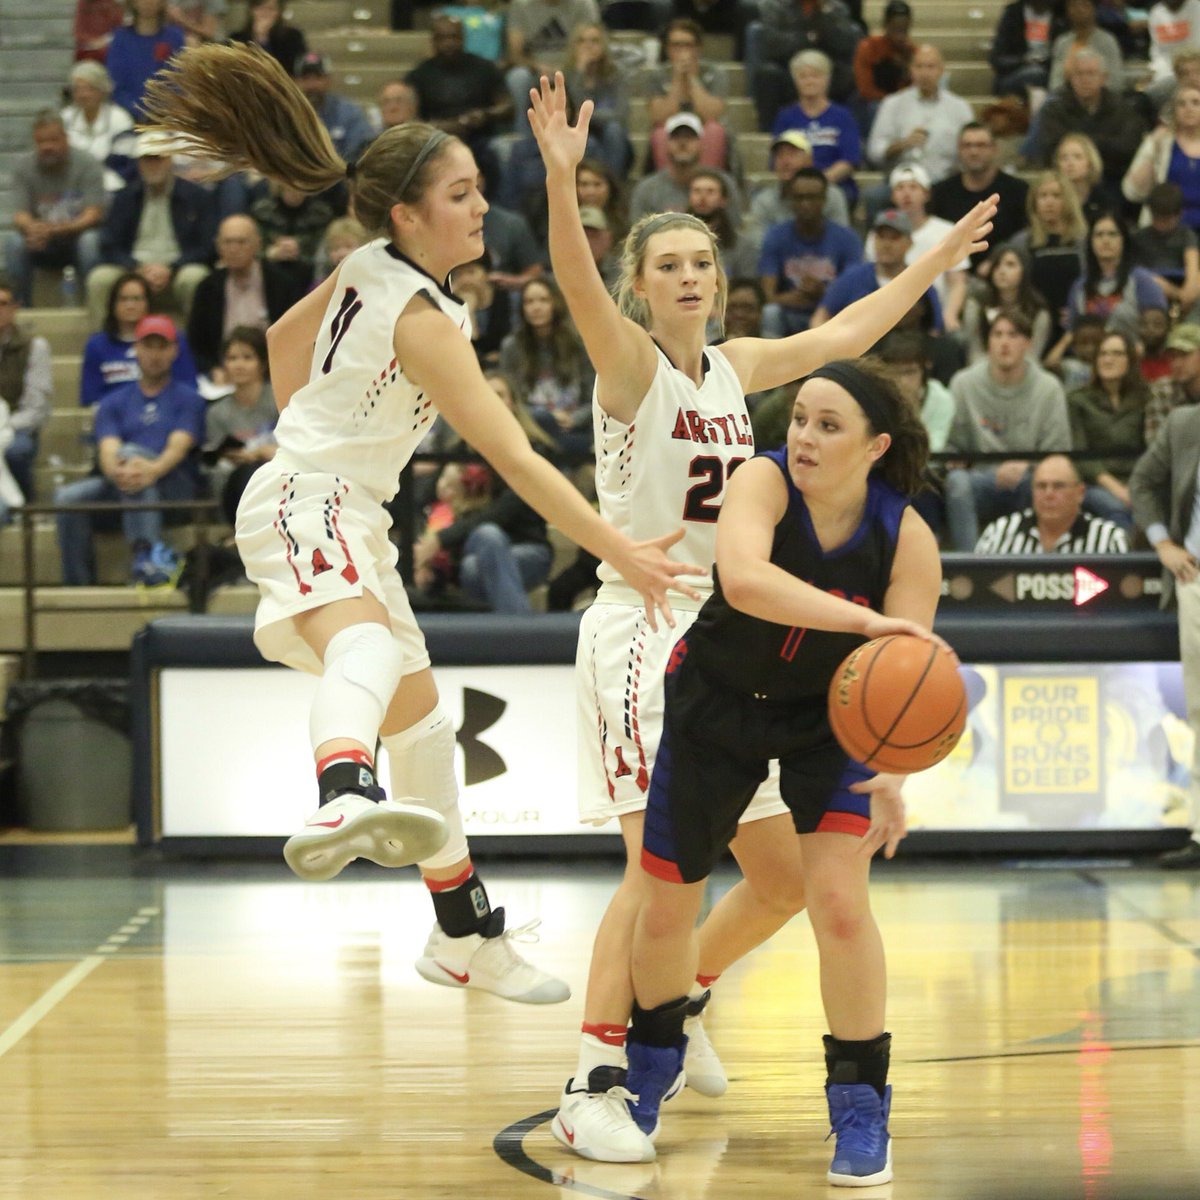 Brooklyn Carl and Madison Ralston block out a Bullard opponent in the Region semifinal game vs the Bullard Panthers at The Fieldhouse, Texas A&M University, Commerce, TX on Feb. 24, 2017 (Caleb Miles/ The Talon News)